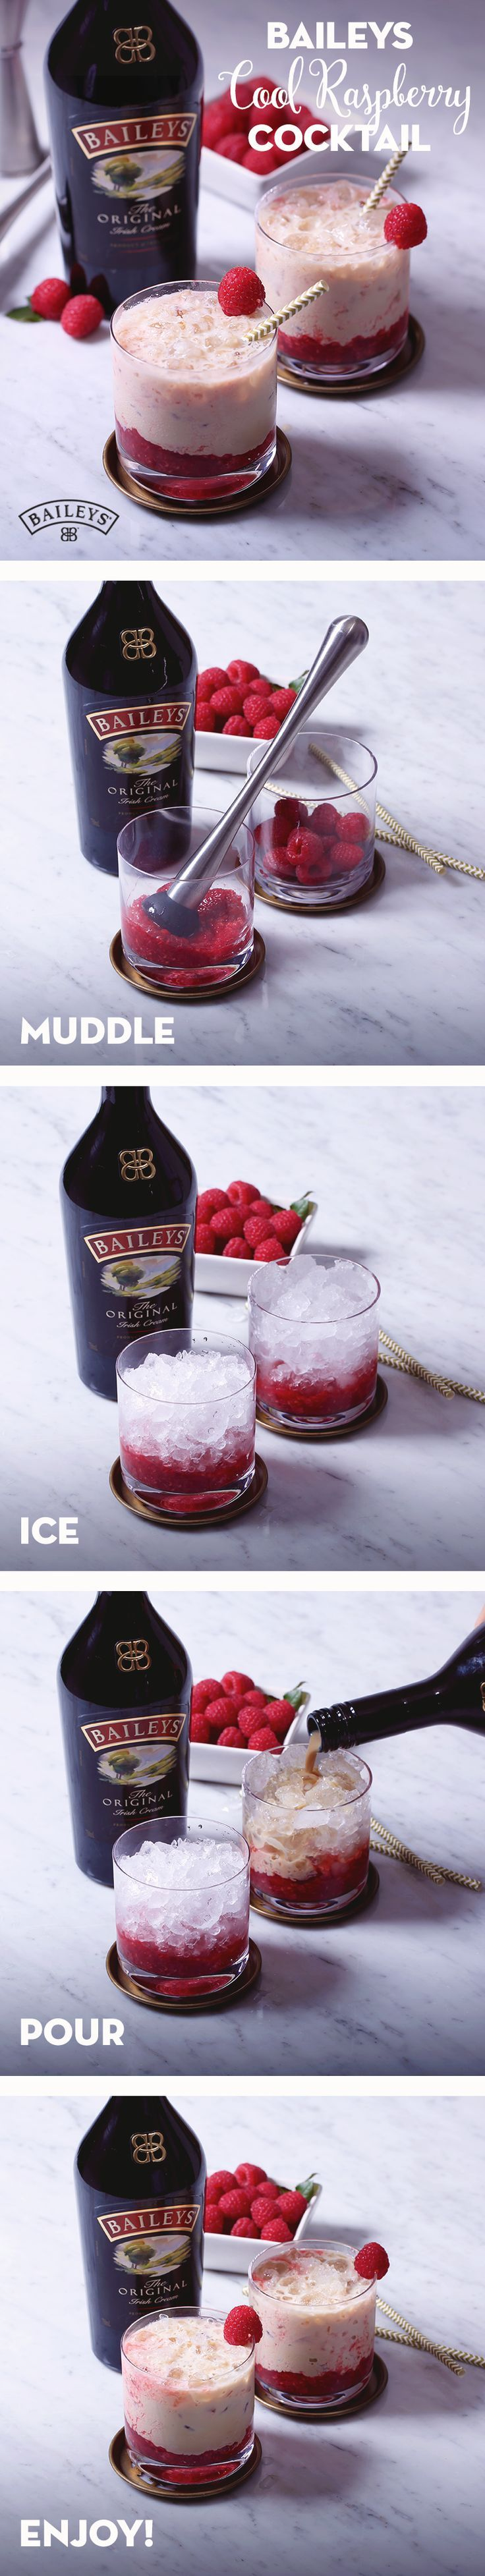 Three-day weekend coming up? Sweeten up your day off with this simple and easy Cool Raspberry cocktail recipe. Made with crushed ice, raspberries and Baileys, it's the perfect cold, refreshing tasting (Cool Summer Ideas)